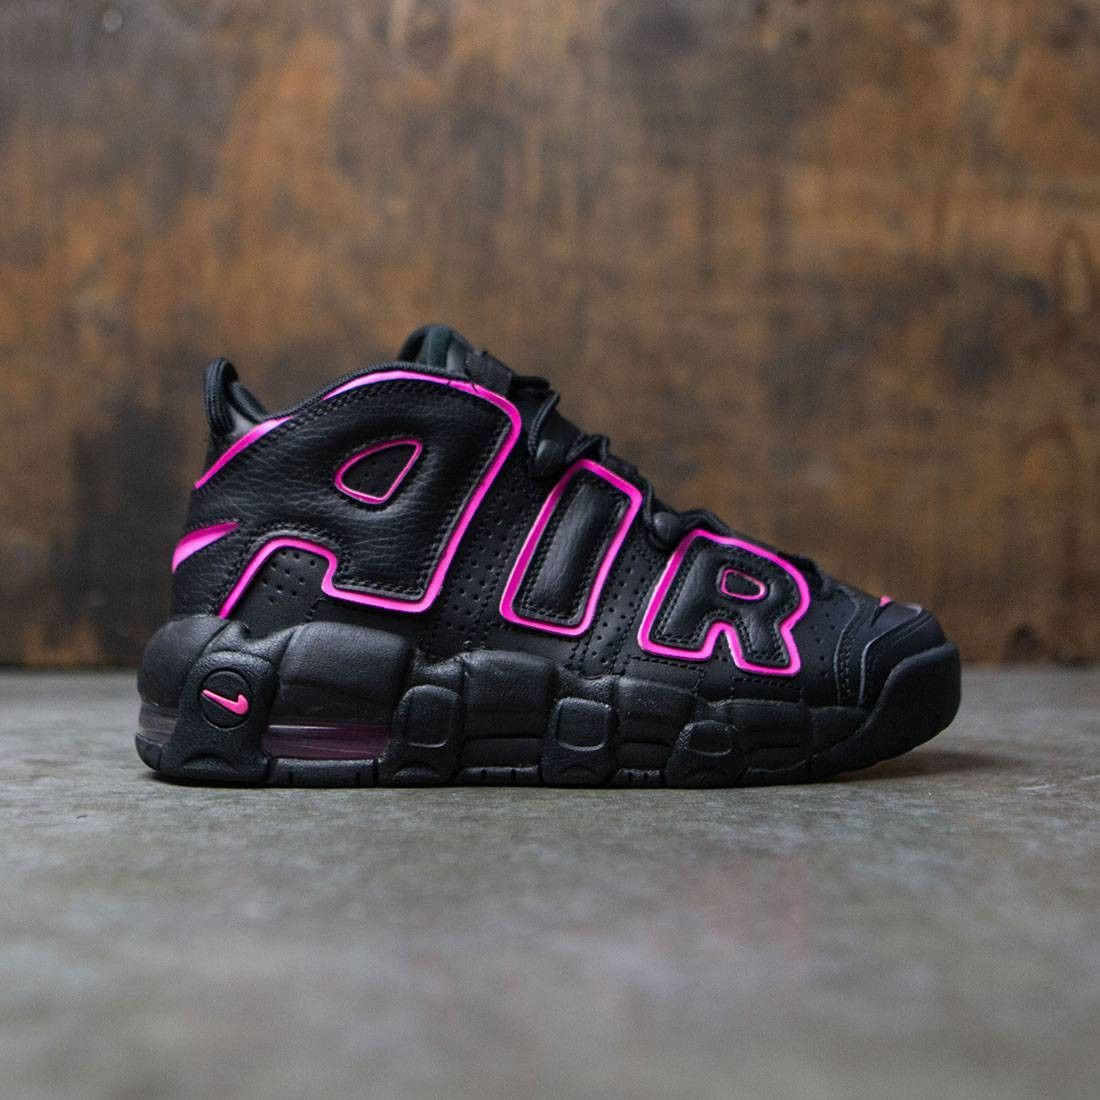 vocal Espectador hoja  Nike Big Kids Nike Air More Uptempo (Gs) (black / pink blast) | Nike air  uptempo, Cute shoes boots, Pink and black nikes